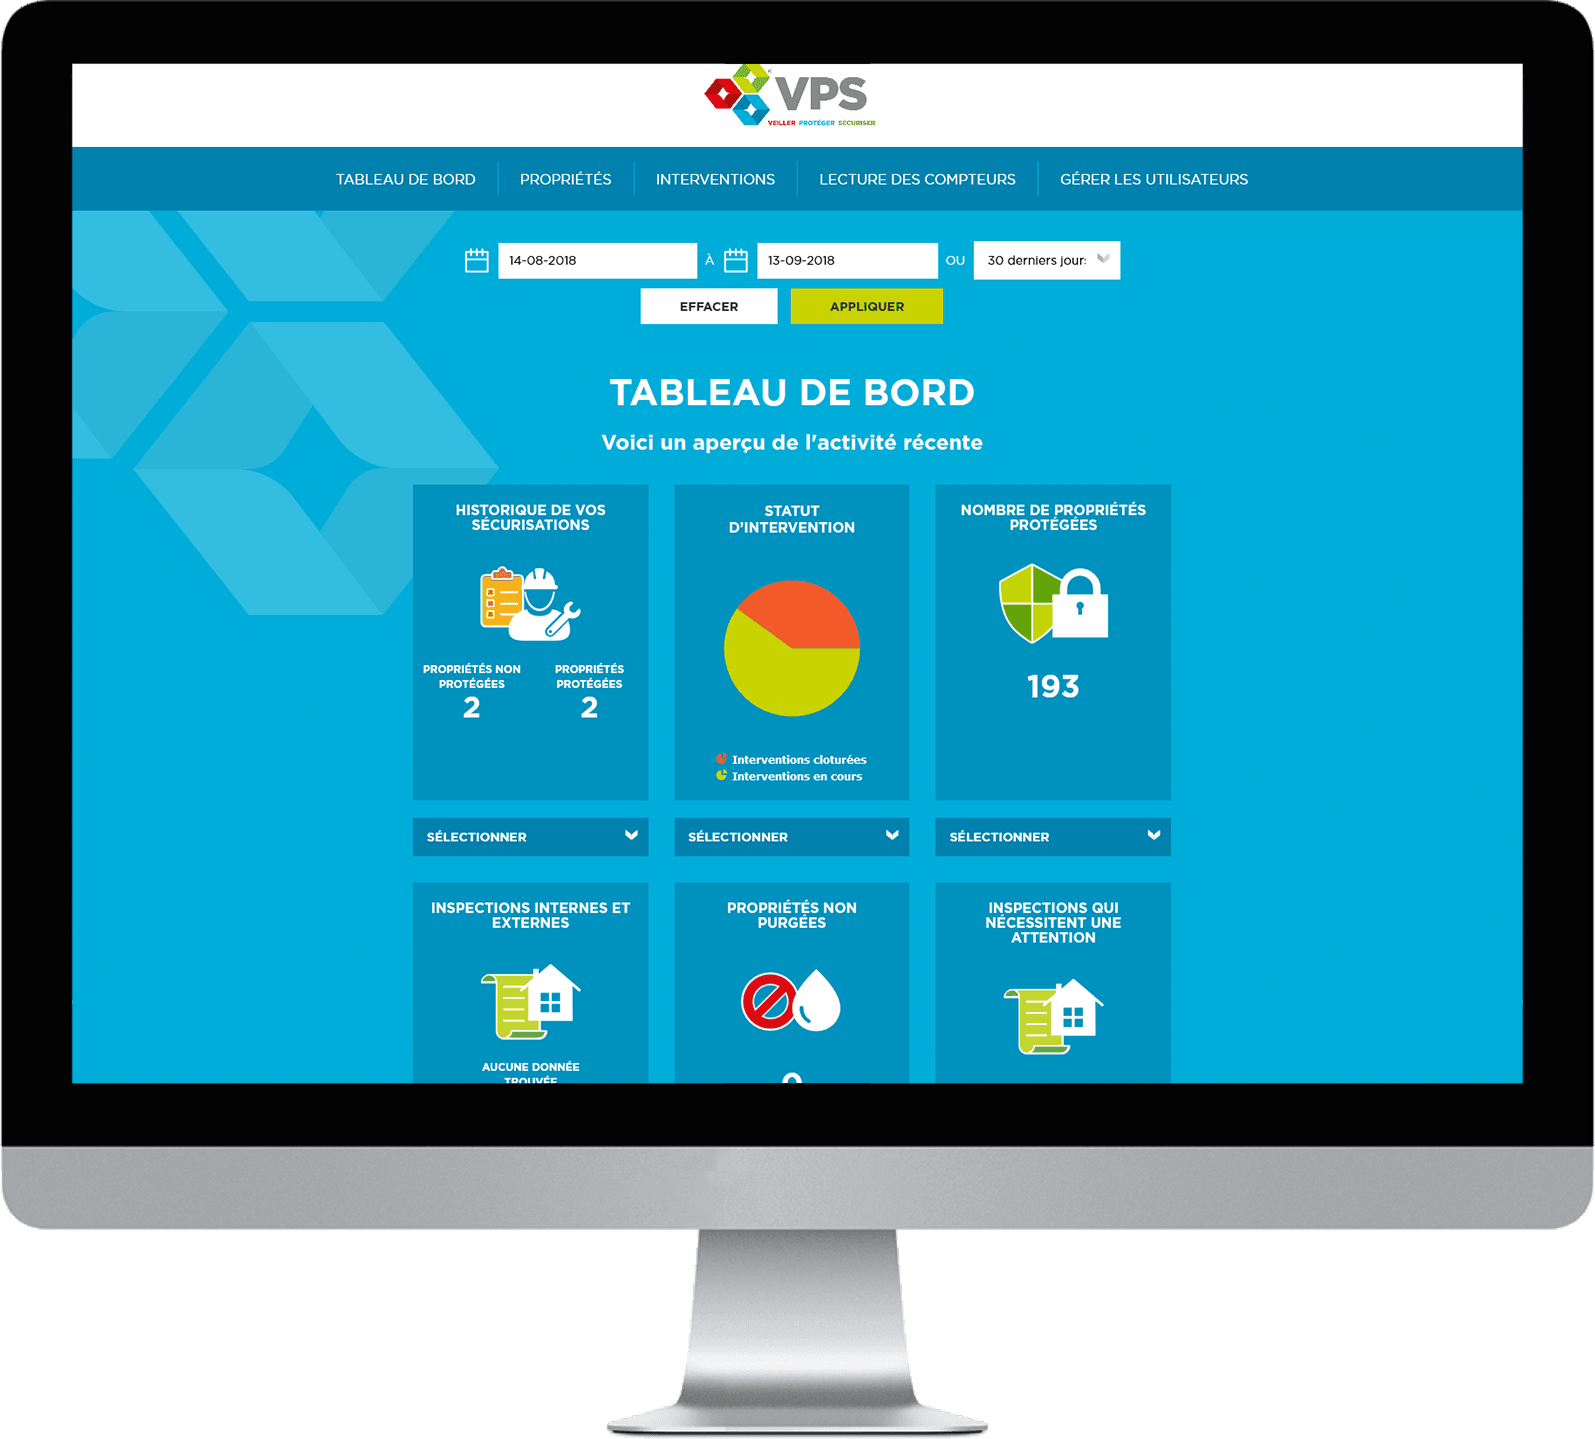 vps insights espace client vps